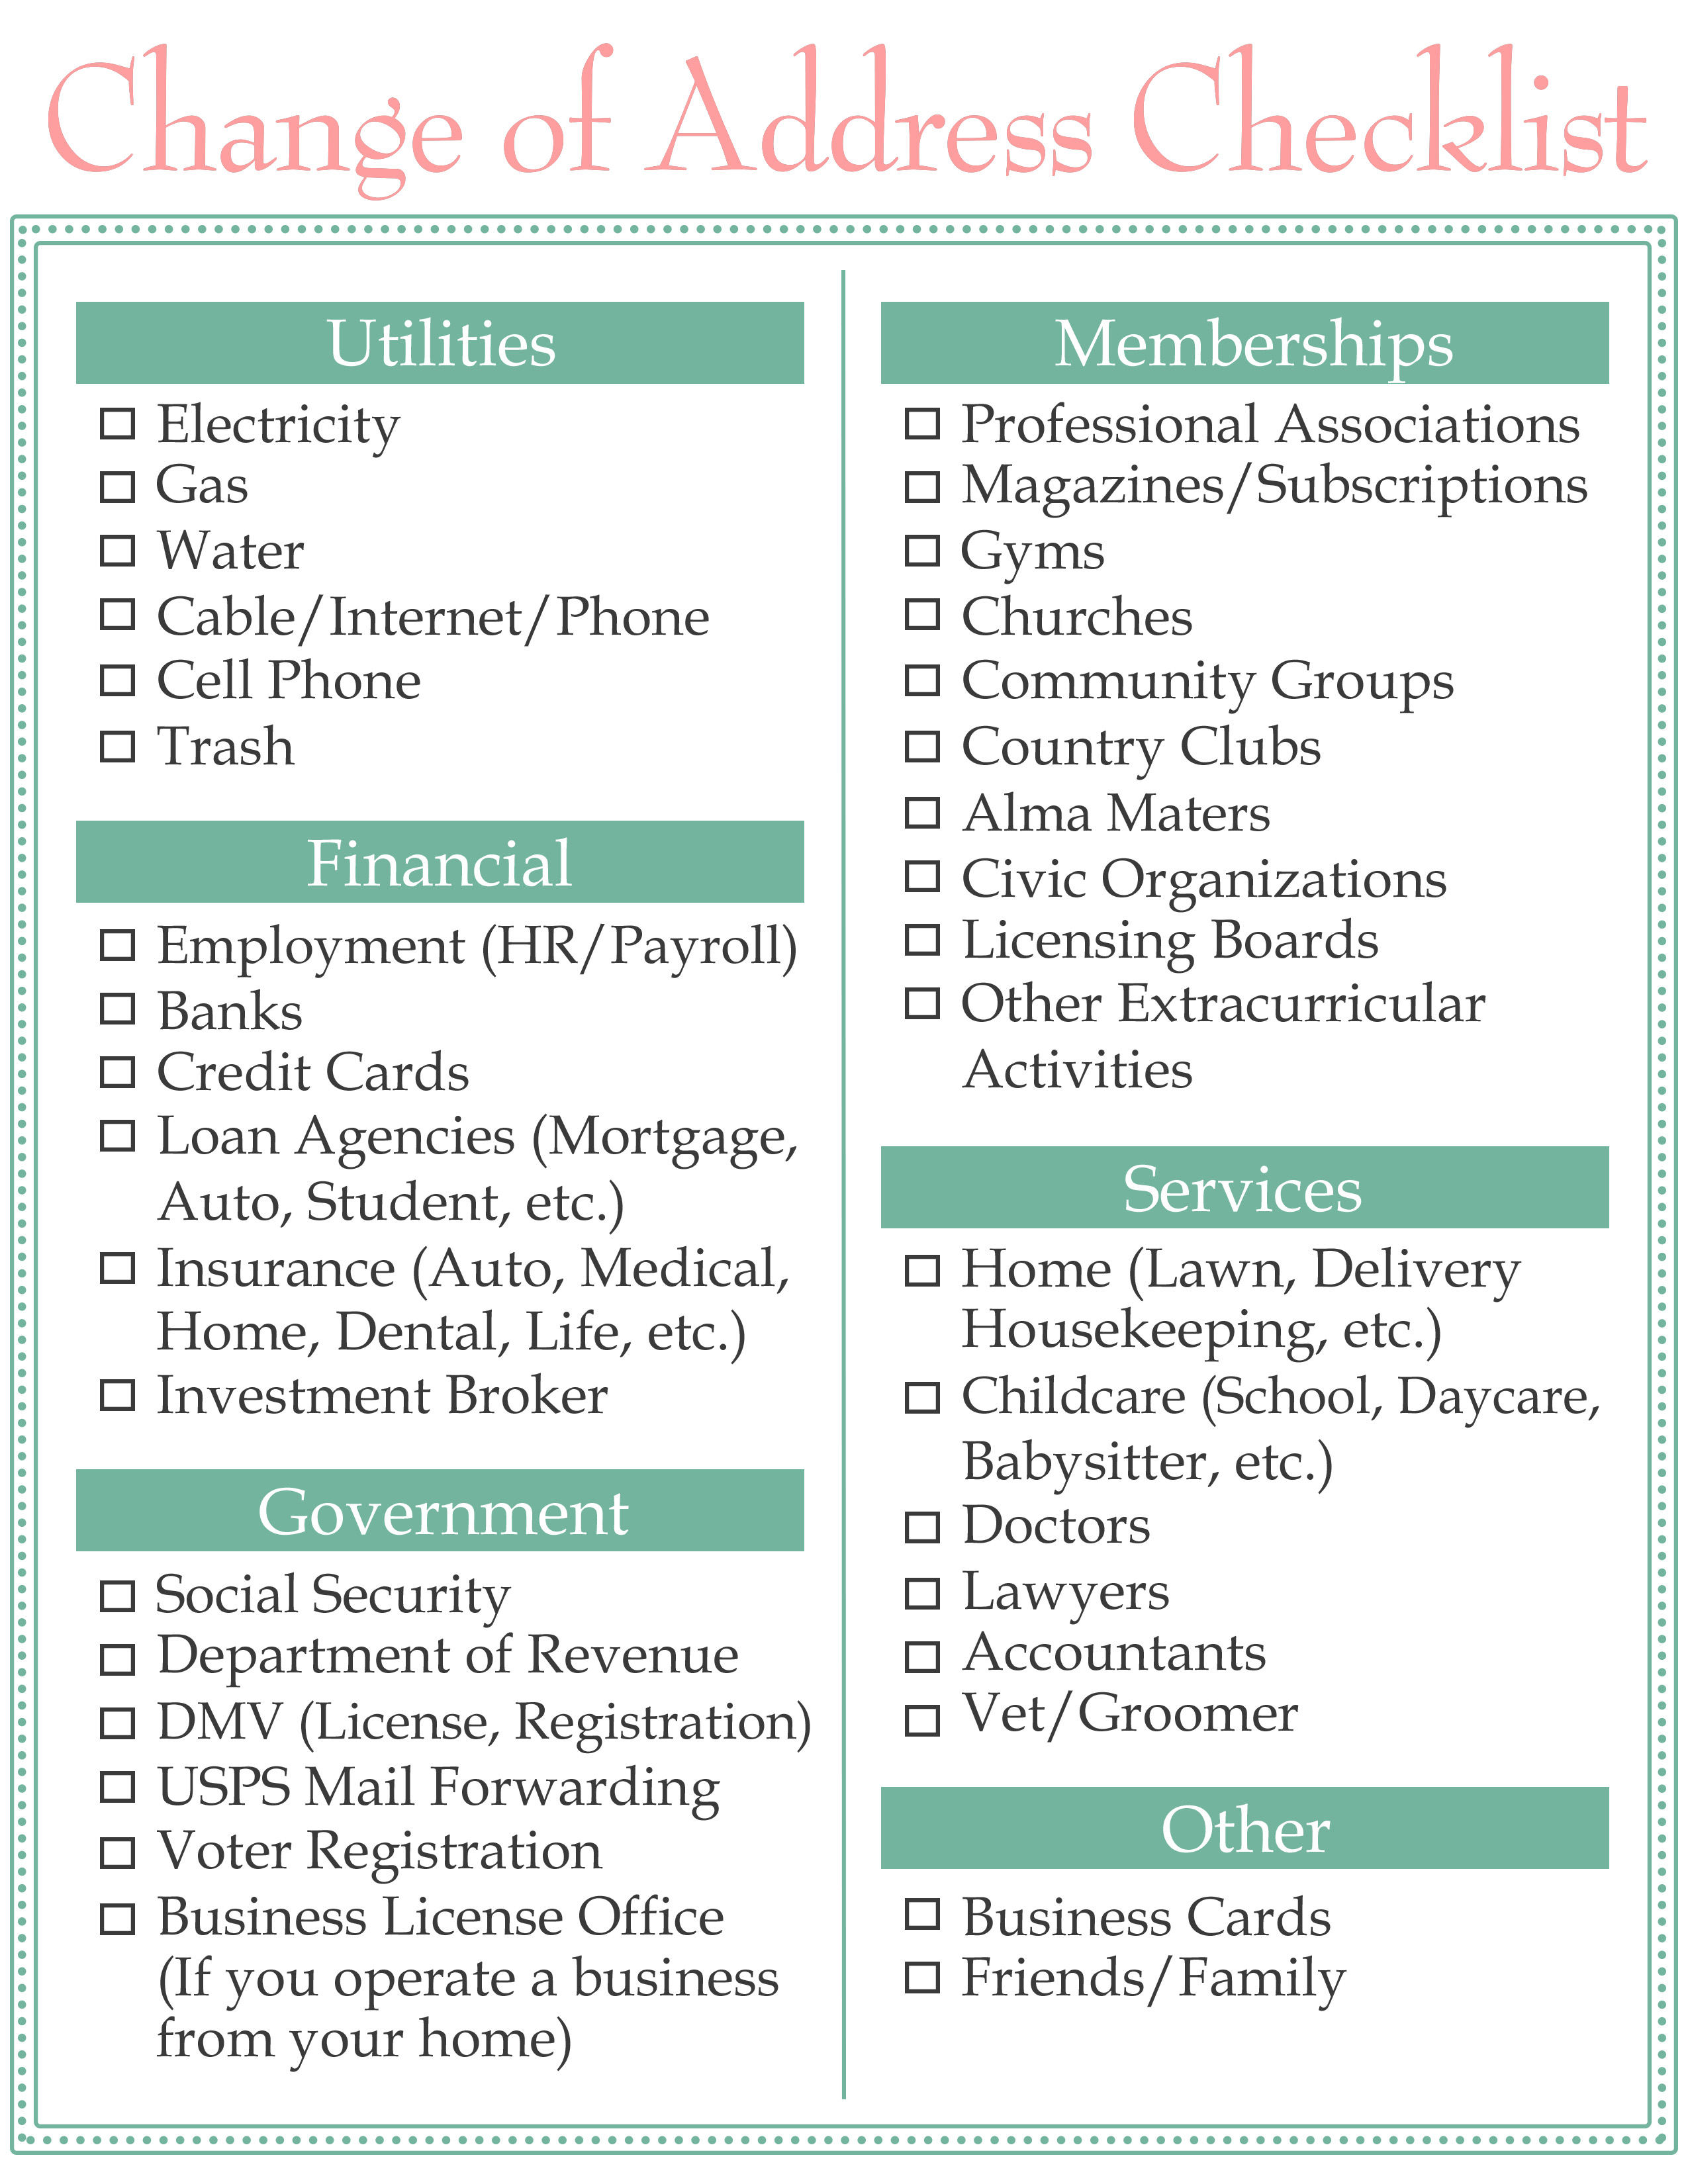 image about Change of Address Checklist Printable identify Variance of Go over Listing Household Lovable Existence